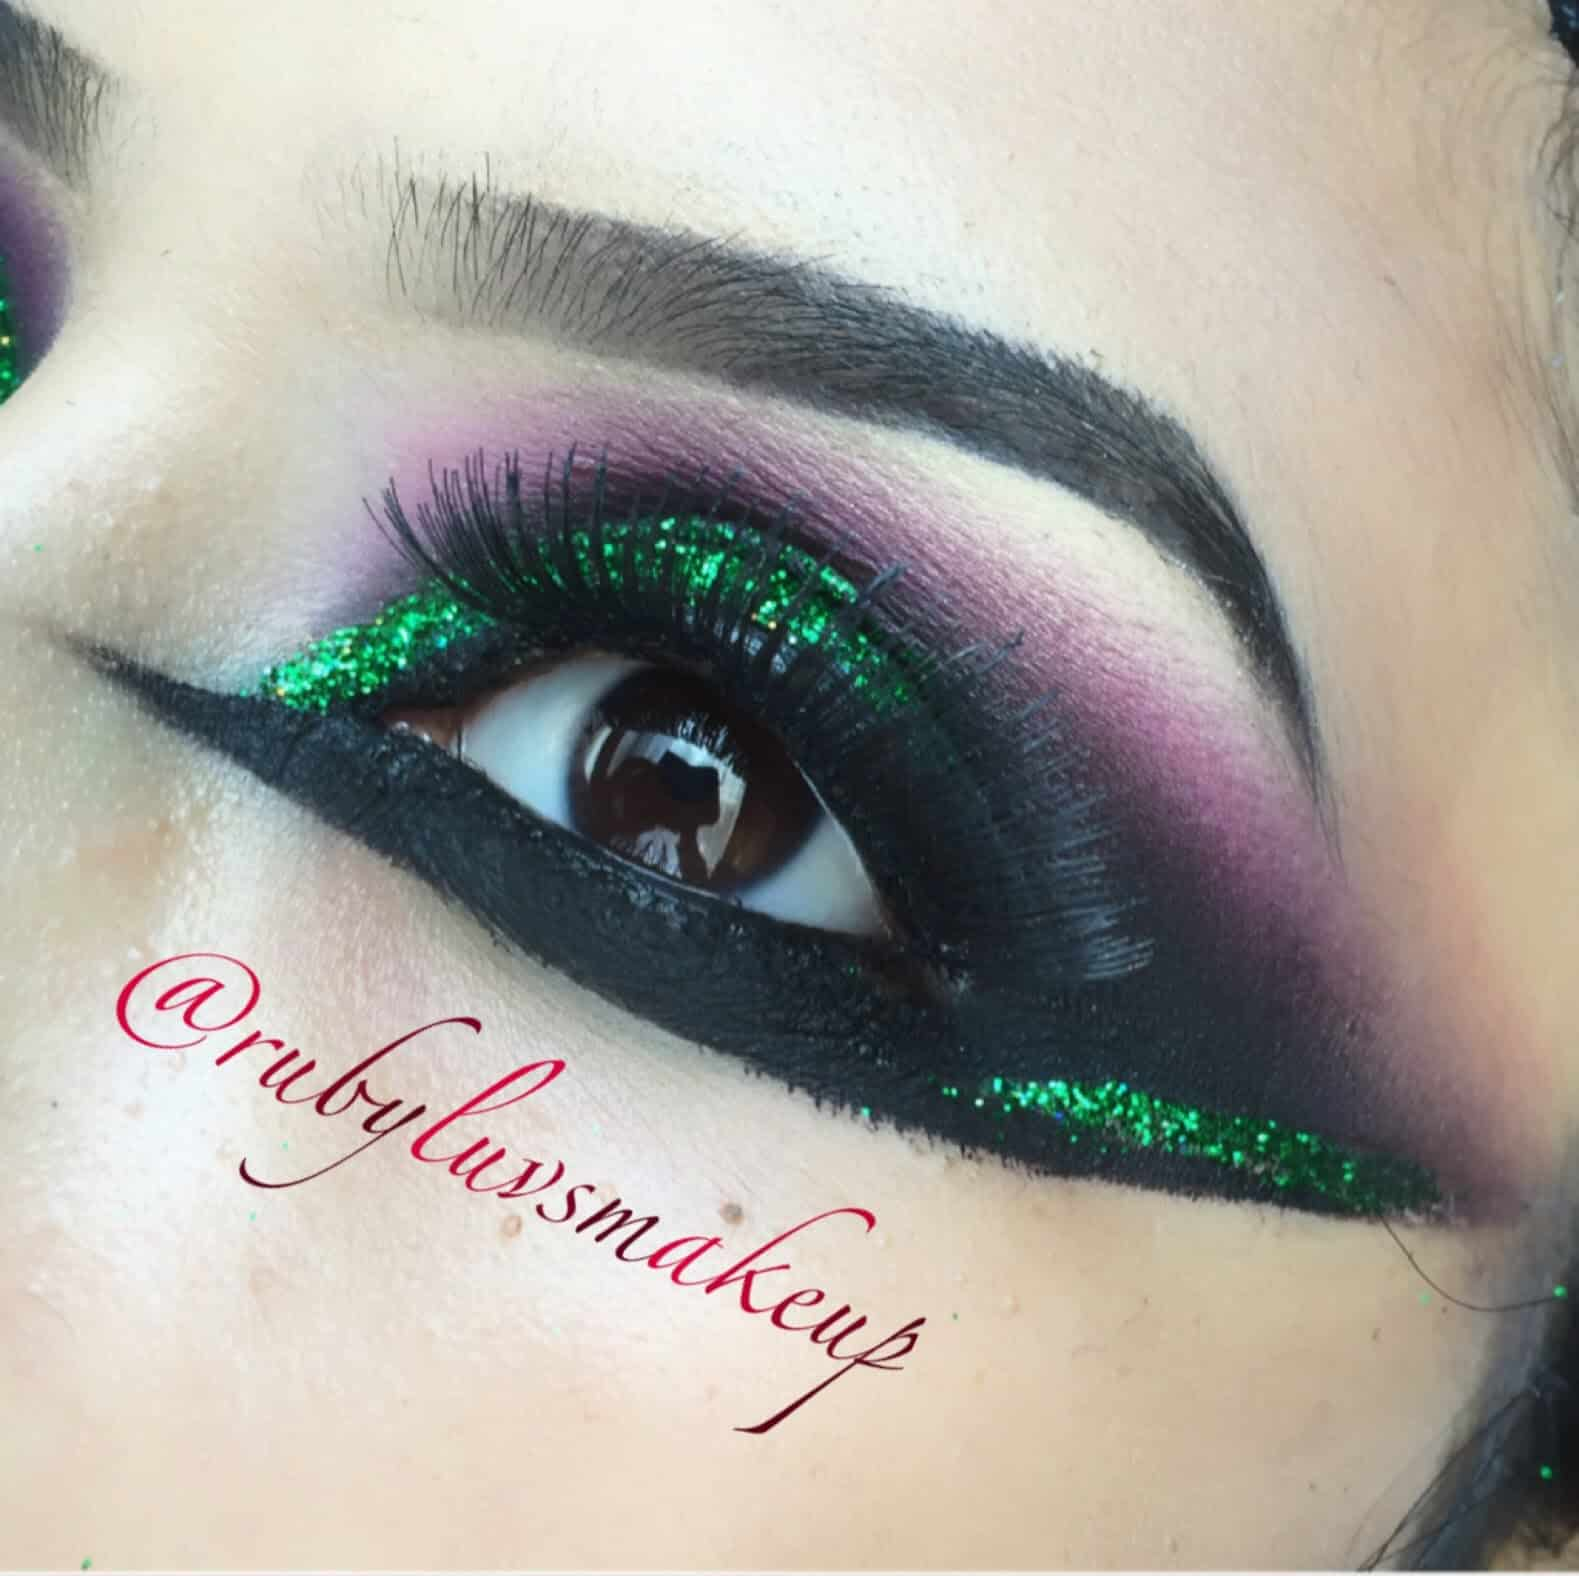 Intense black liner and green glitter eye